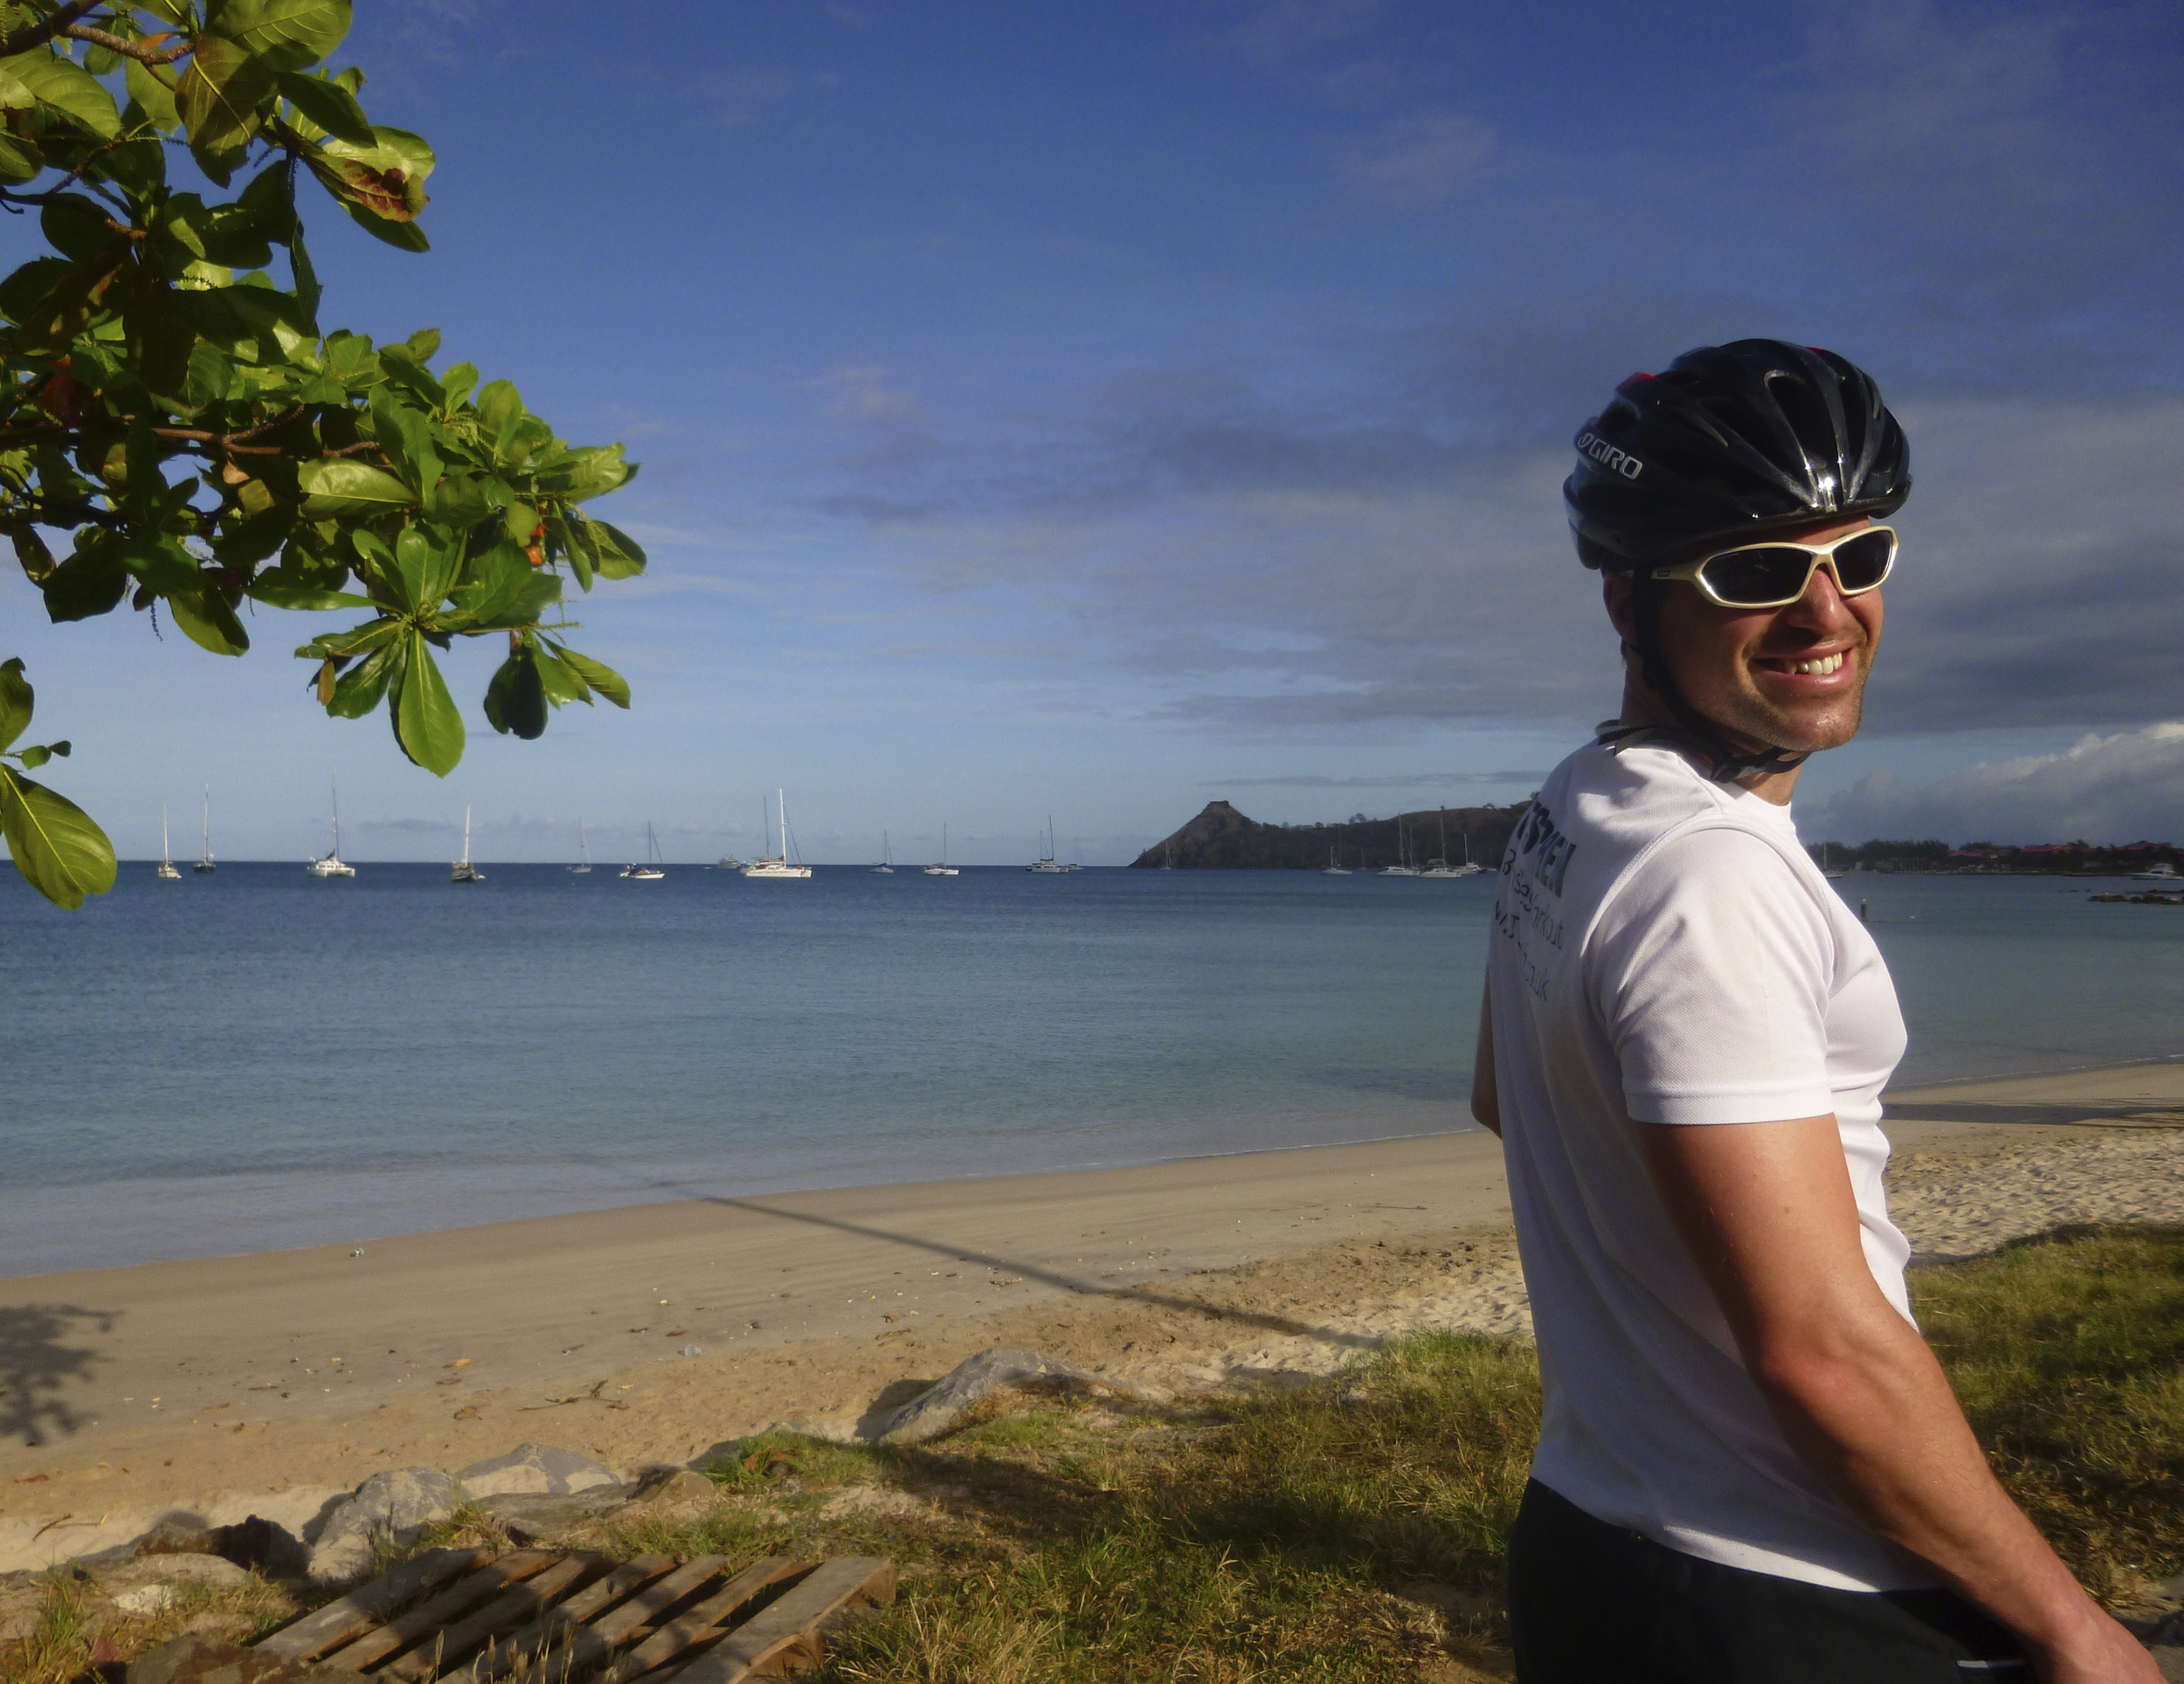 Life couldn't get any better at this point, sun, sea and cycling